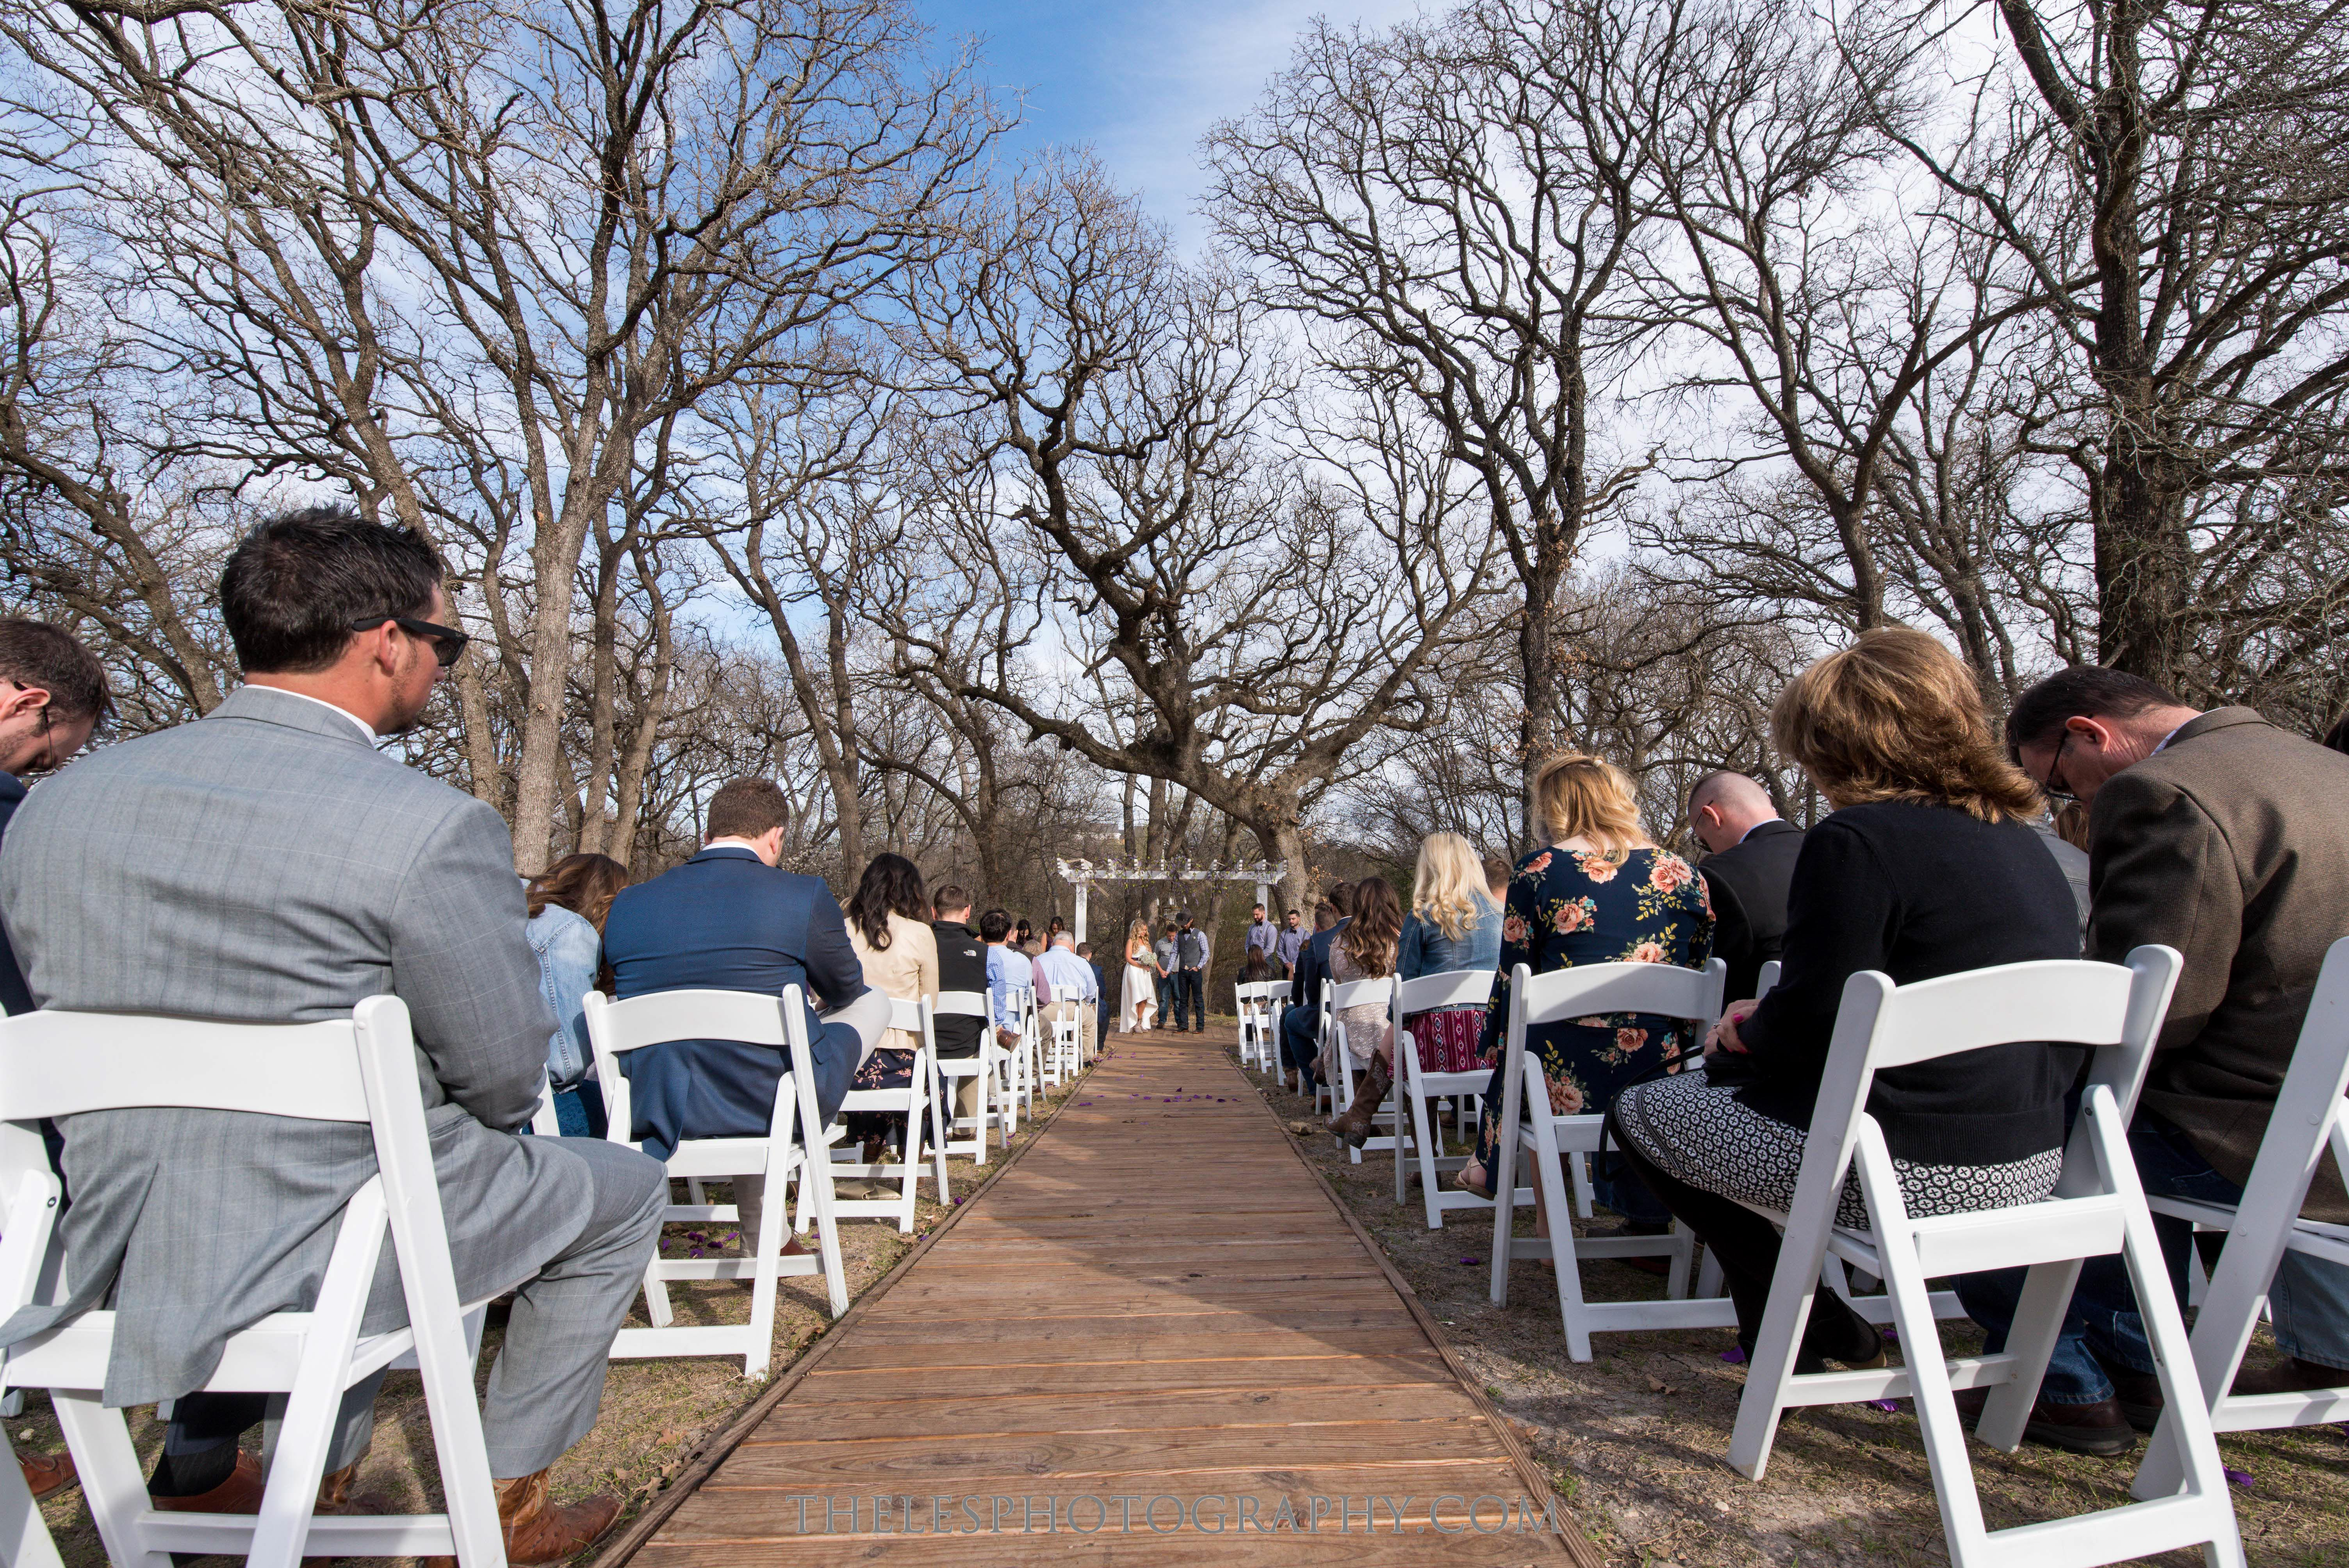 065 Dallas Wedding Photography - Photographer - The Les Photography - Fort Country Memories Wedding